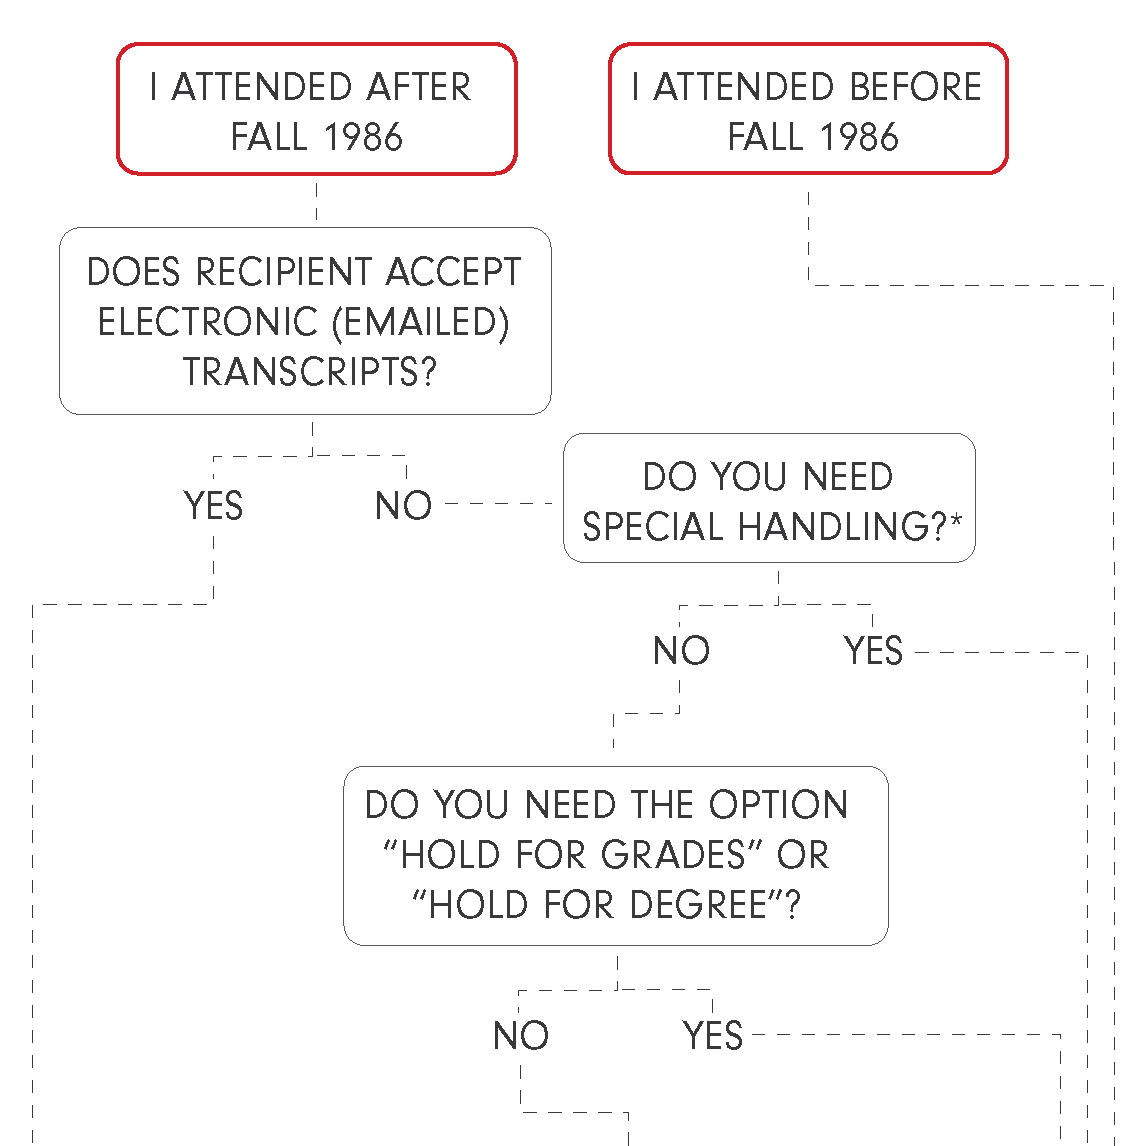 Flow Chart explained in the text above